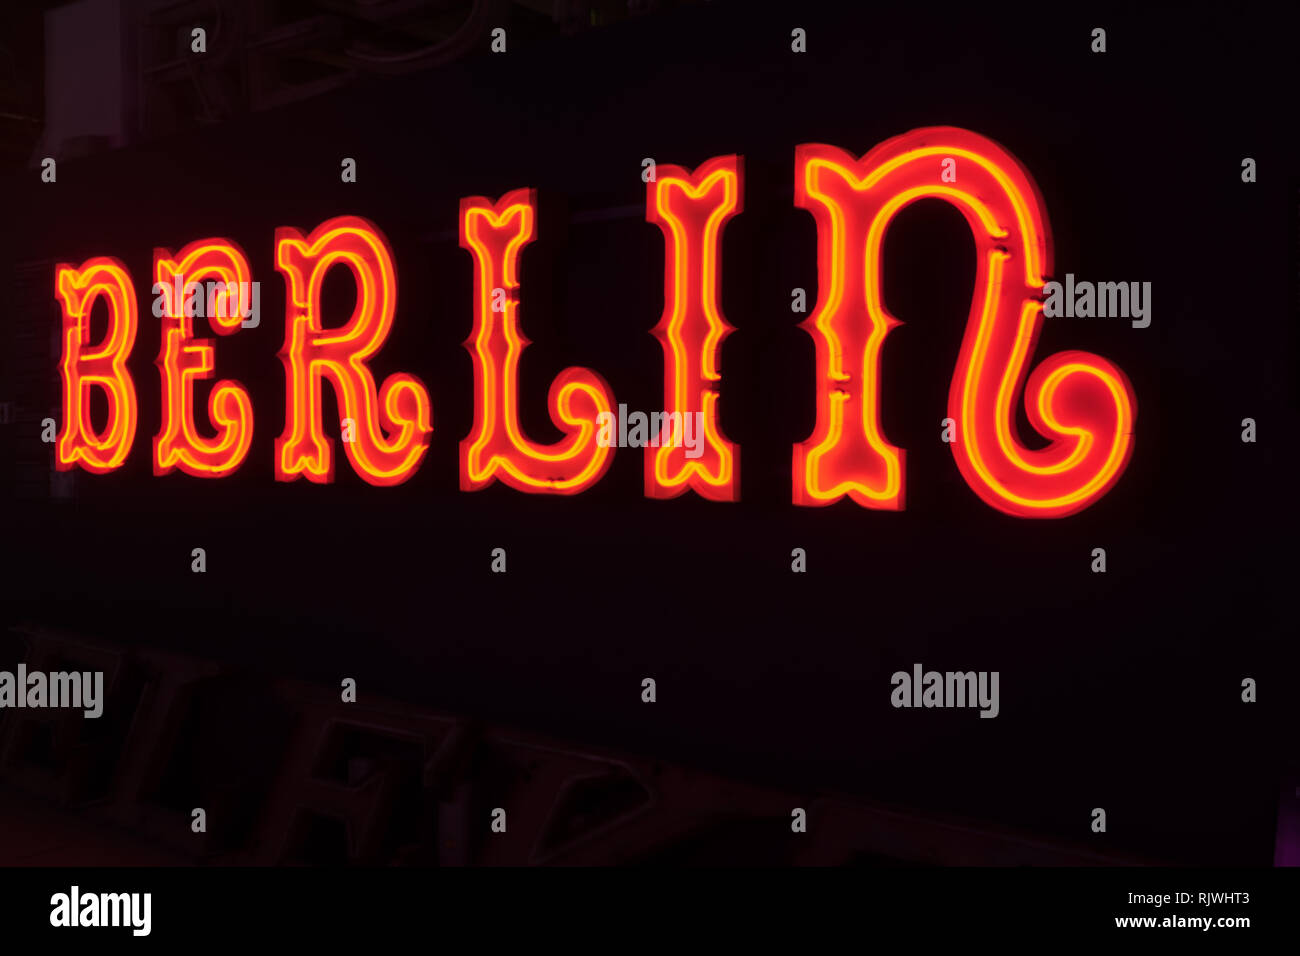 Neon sign of Berlin in Landscape Stock Photo